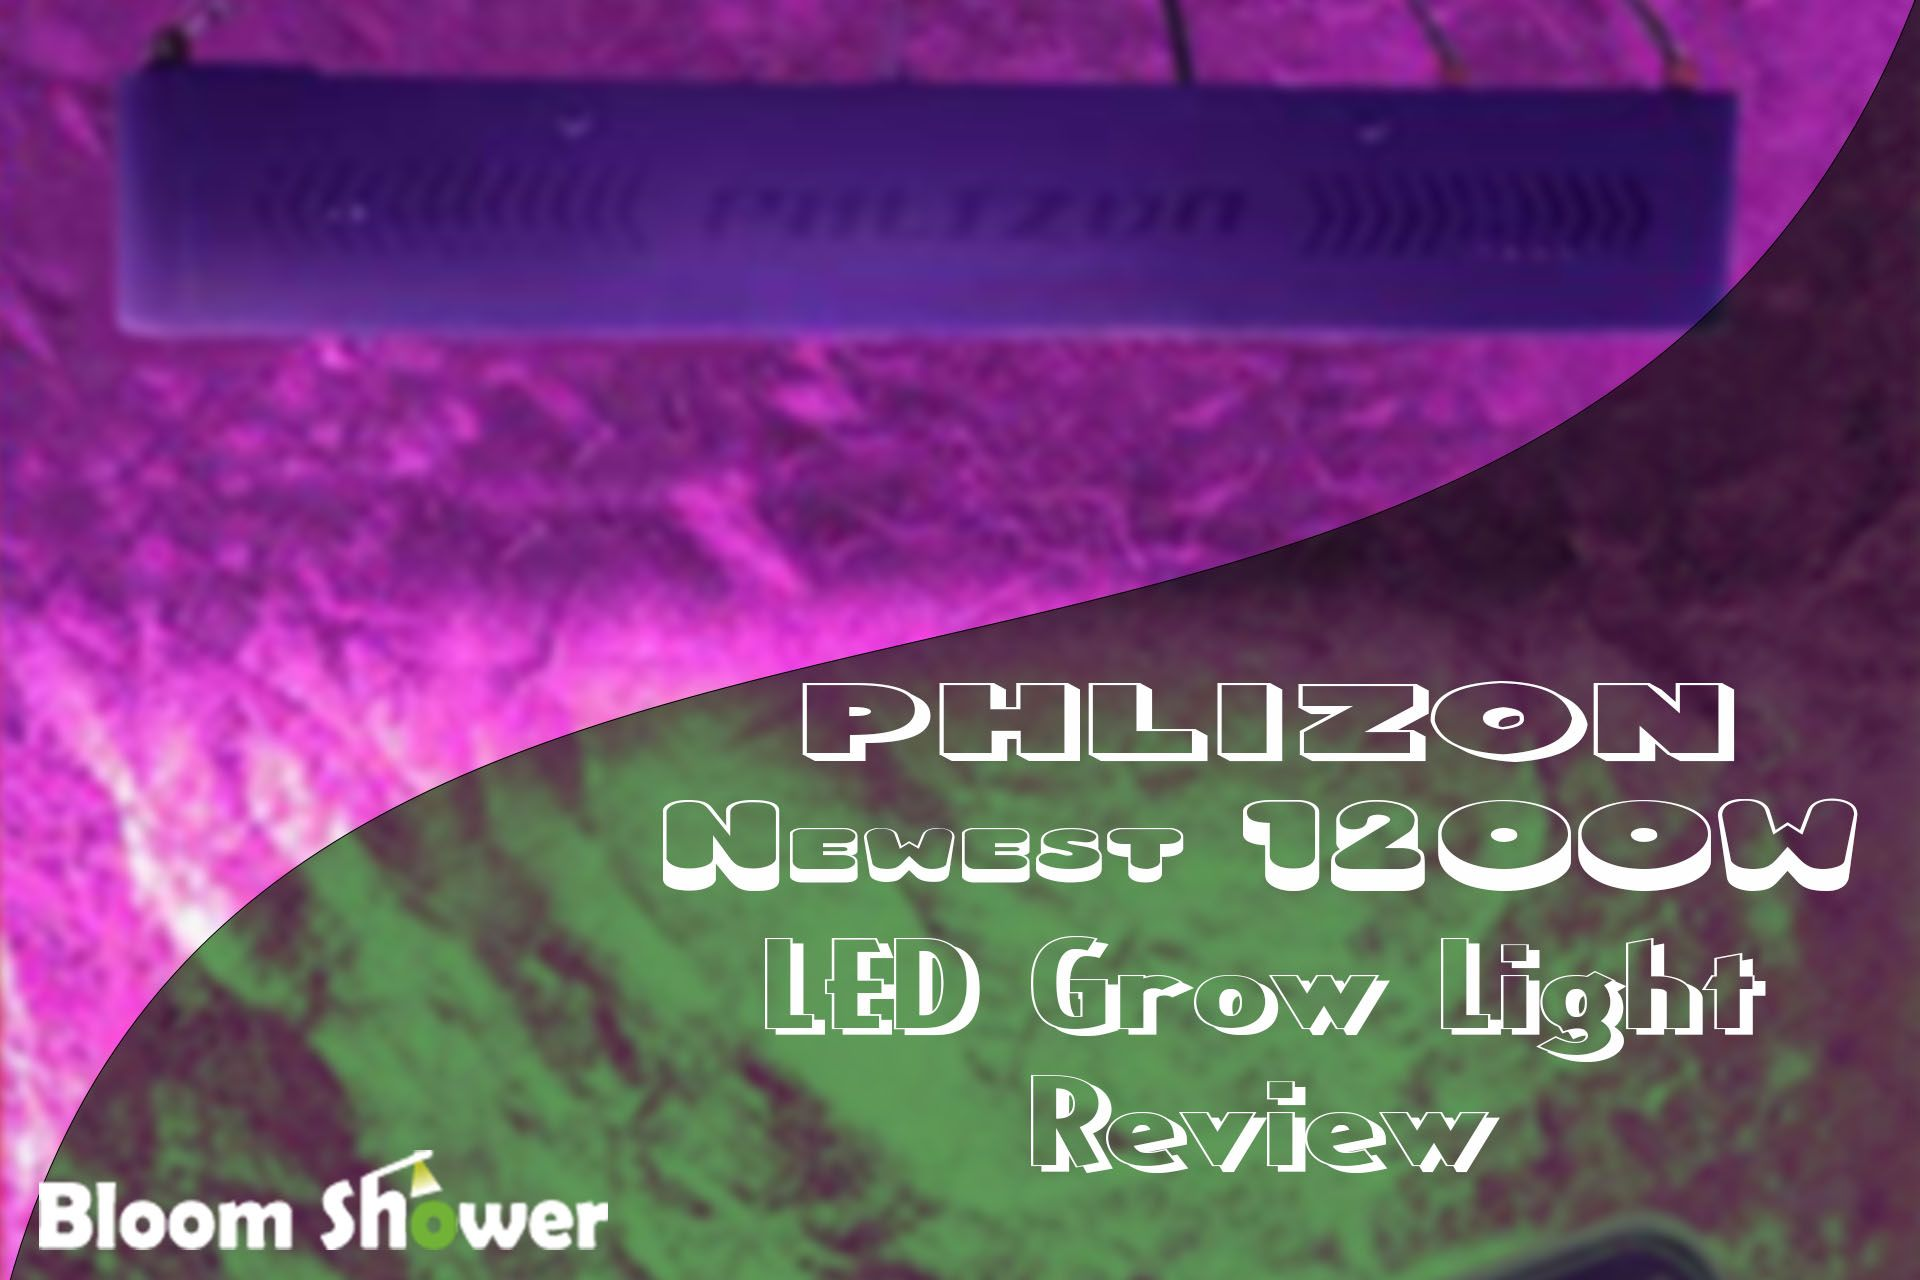 Phlizon Newest 1200w Led Grow Light Review For Better Yield Led Grow Lights Grow Lights Led Grow